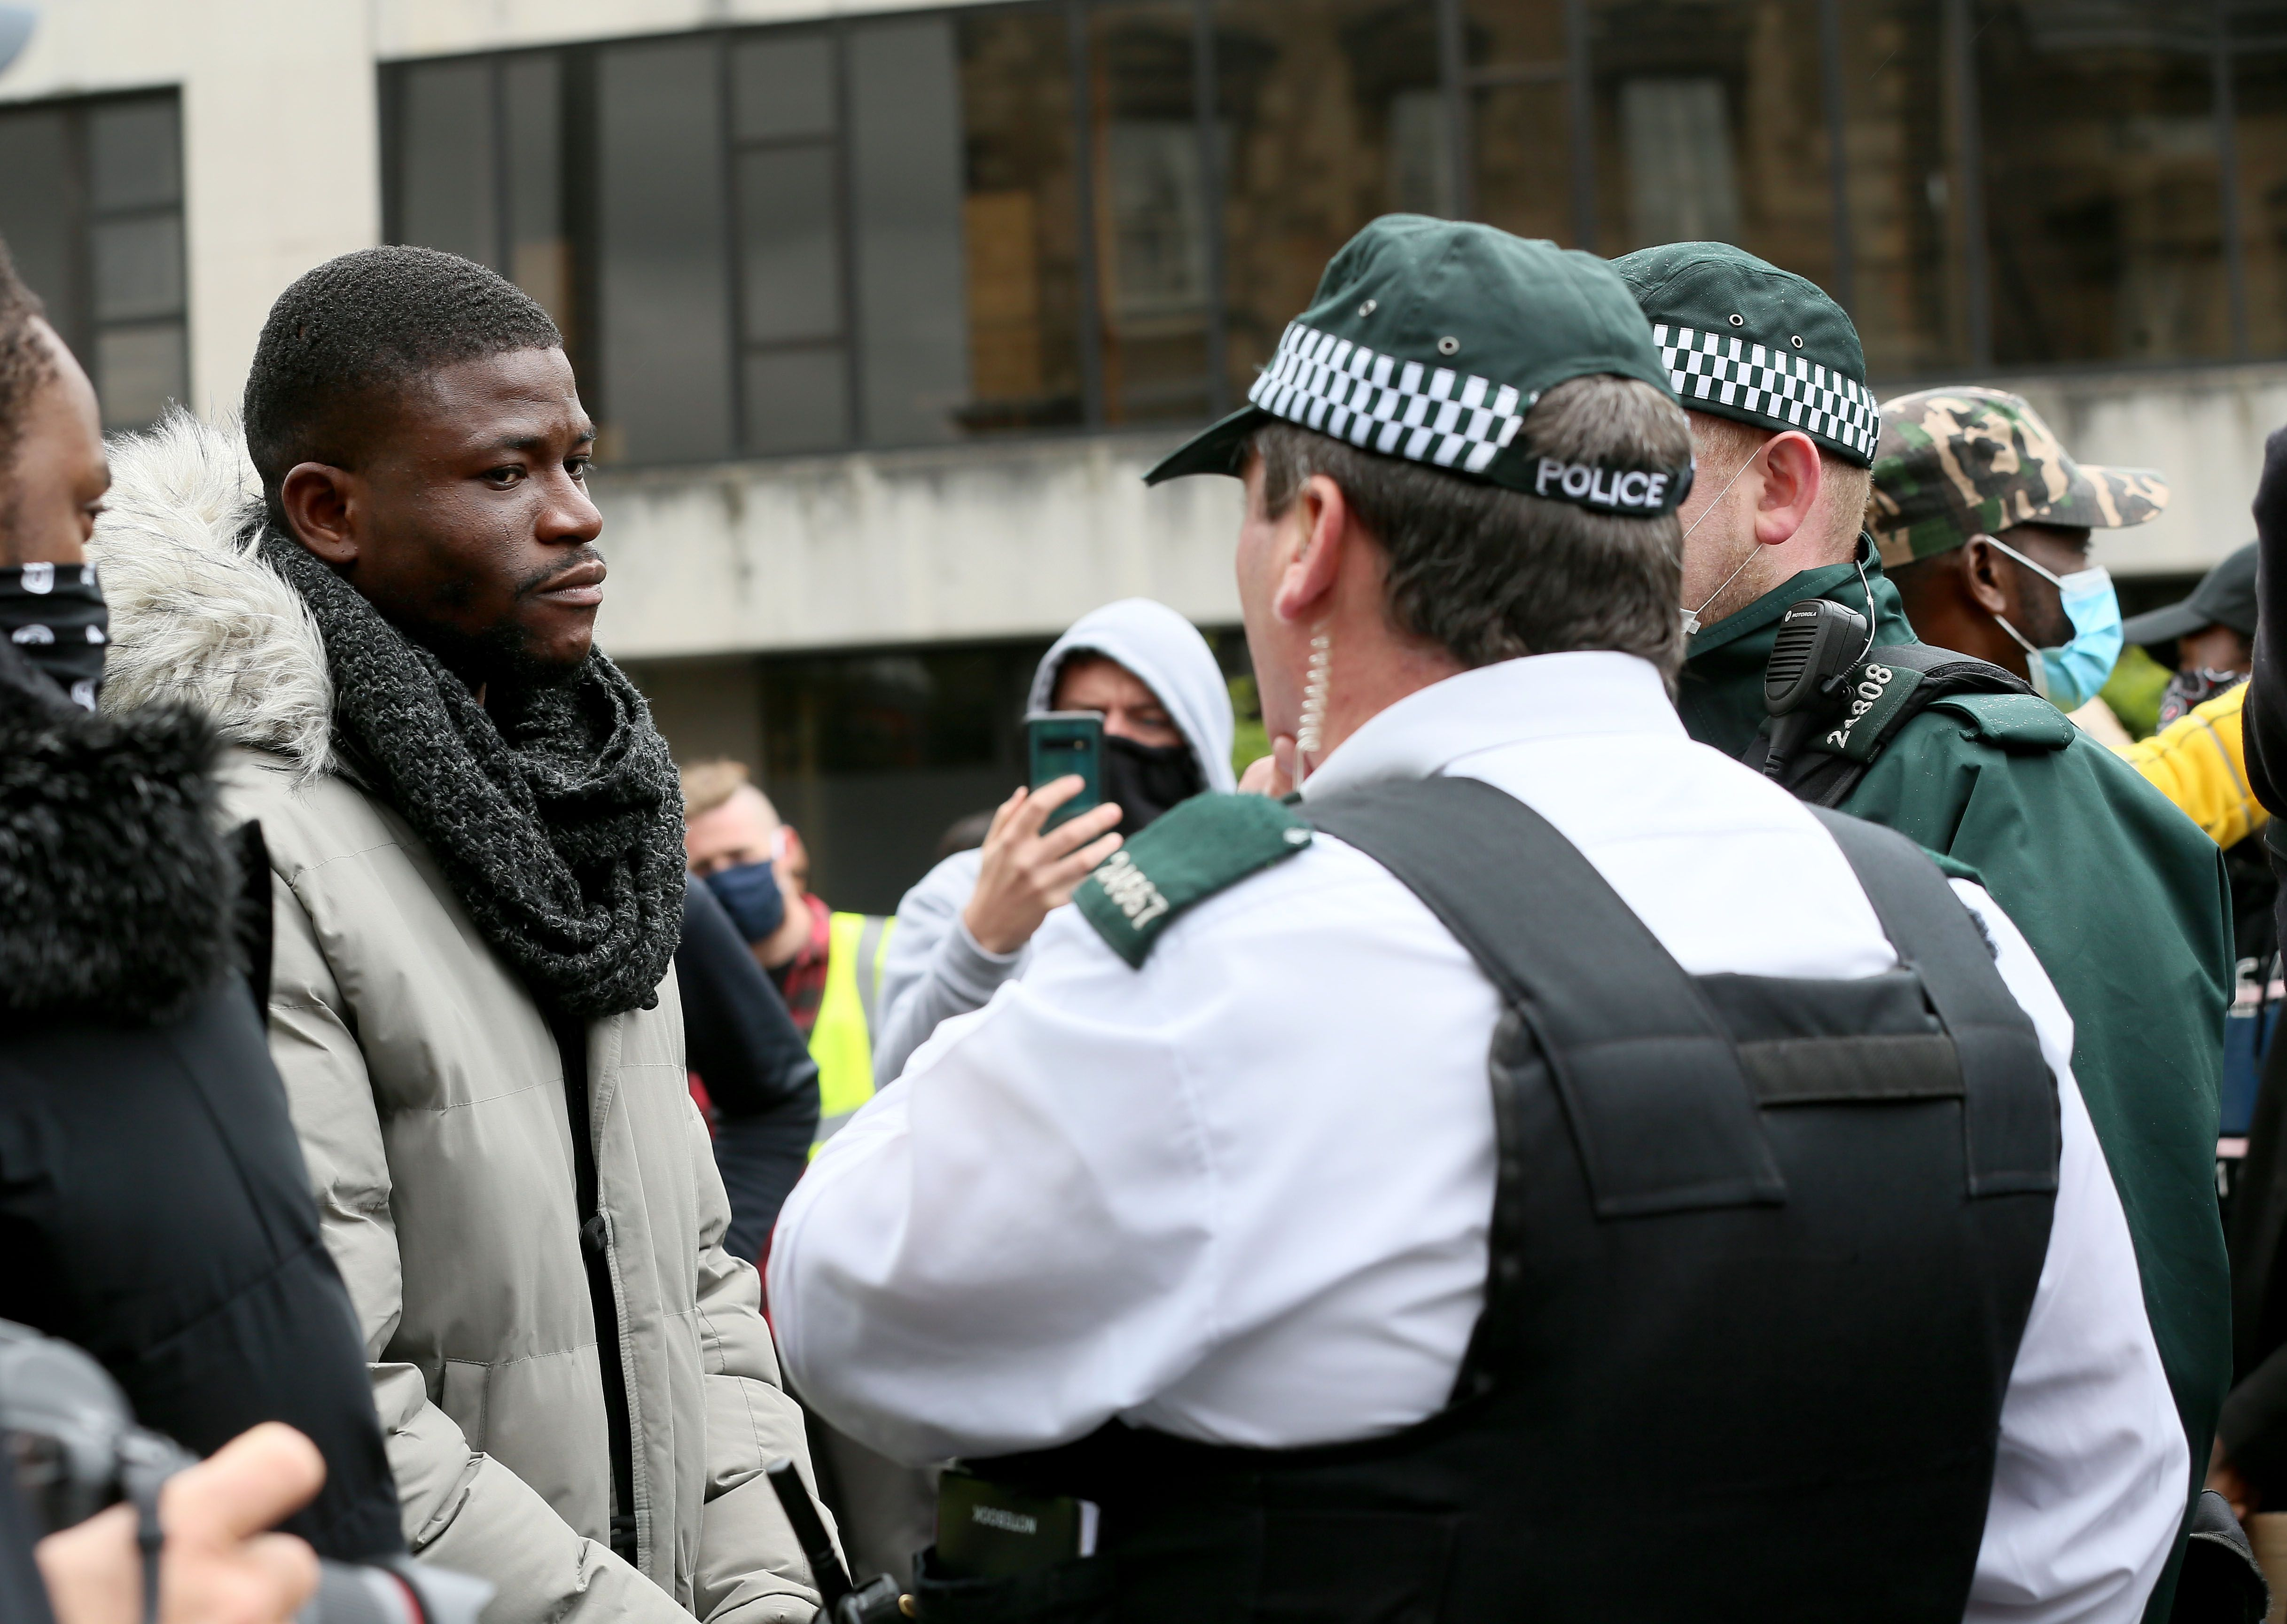 PROTEST: Black Lives Matter demonstrators being questioned by police at a George Floyd rally in Belfast in June 2020.